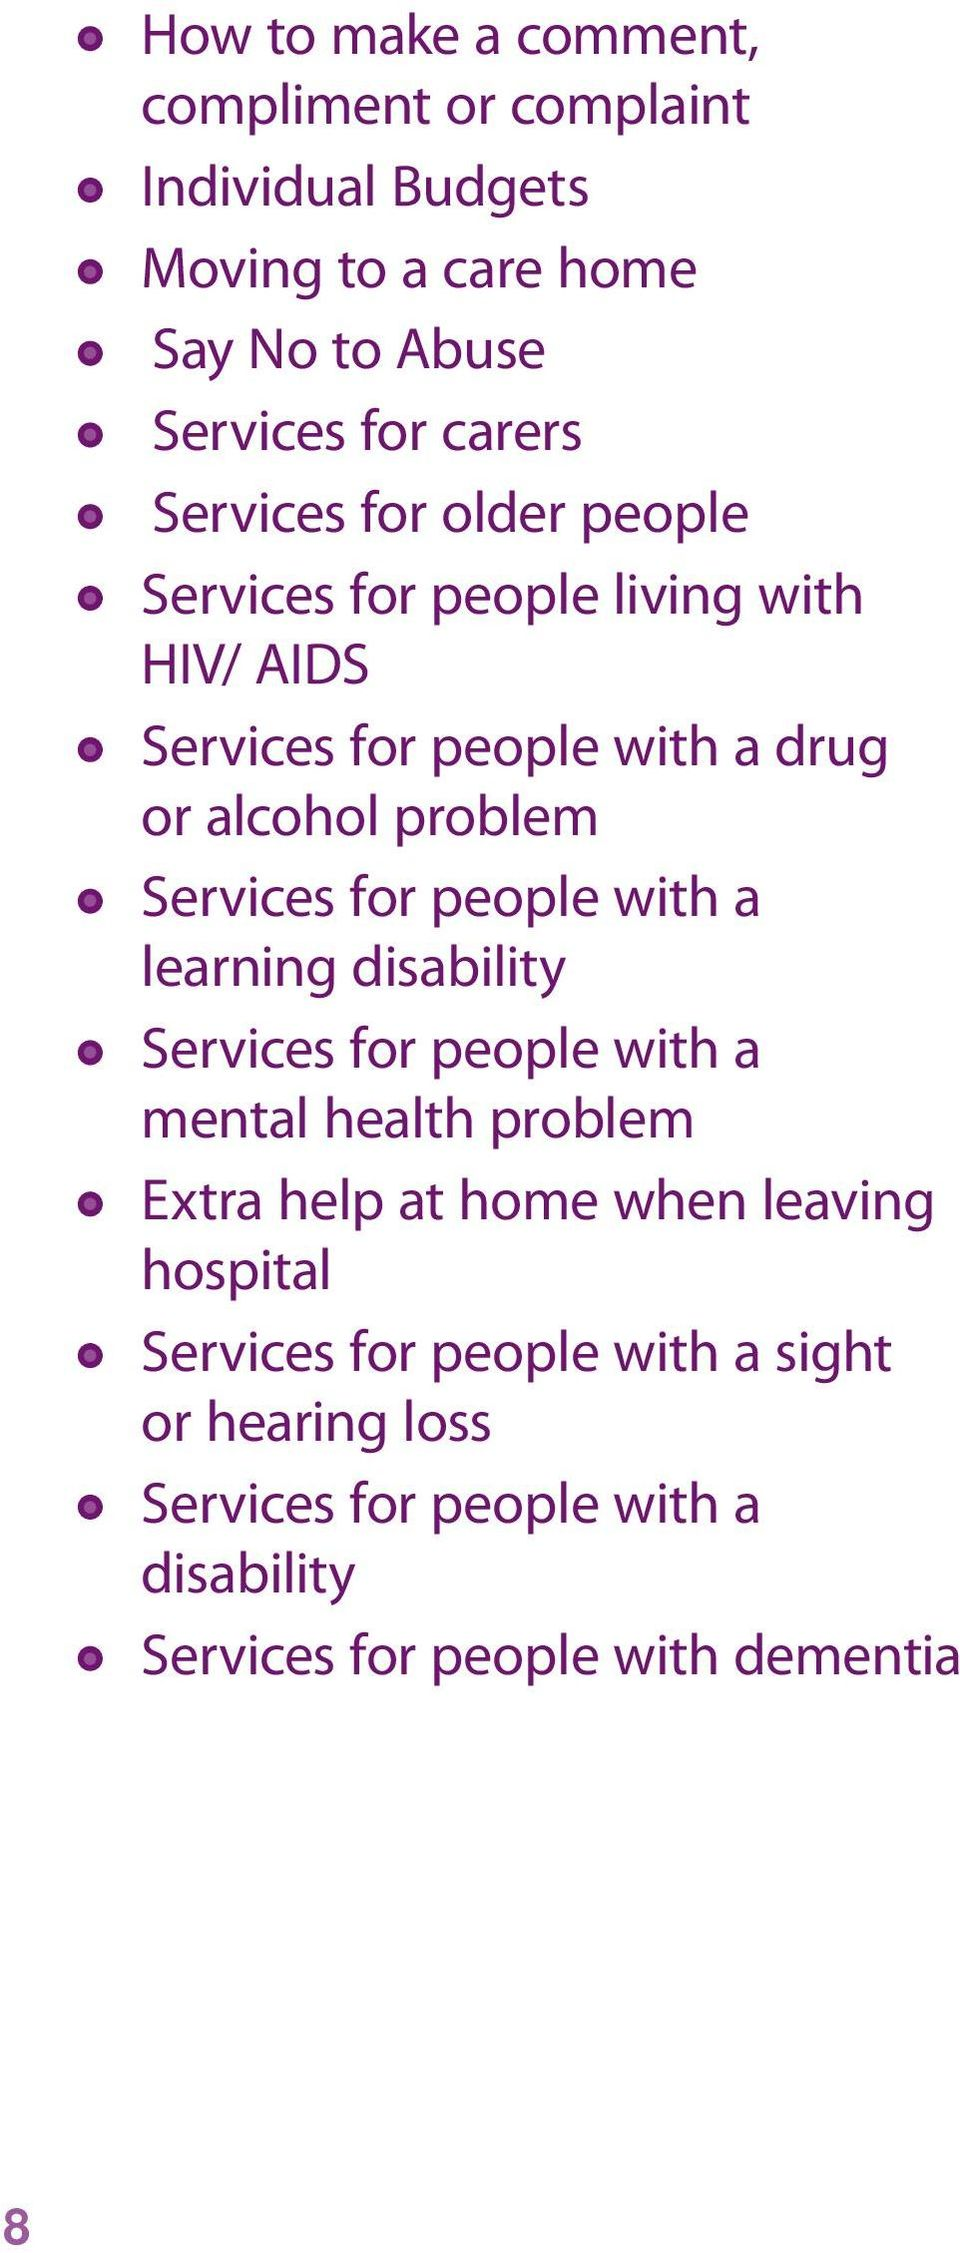 Services for people with a learning disability Services for people with a mental health problem Extra help at home when